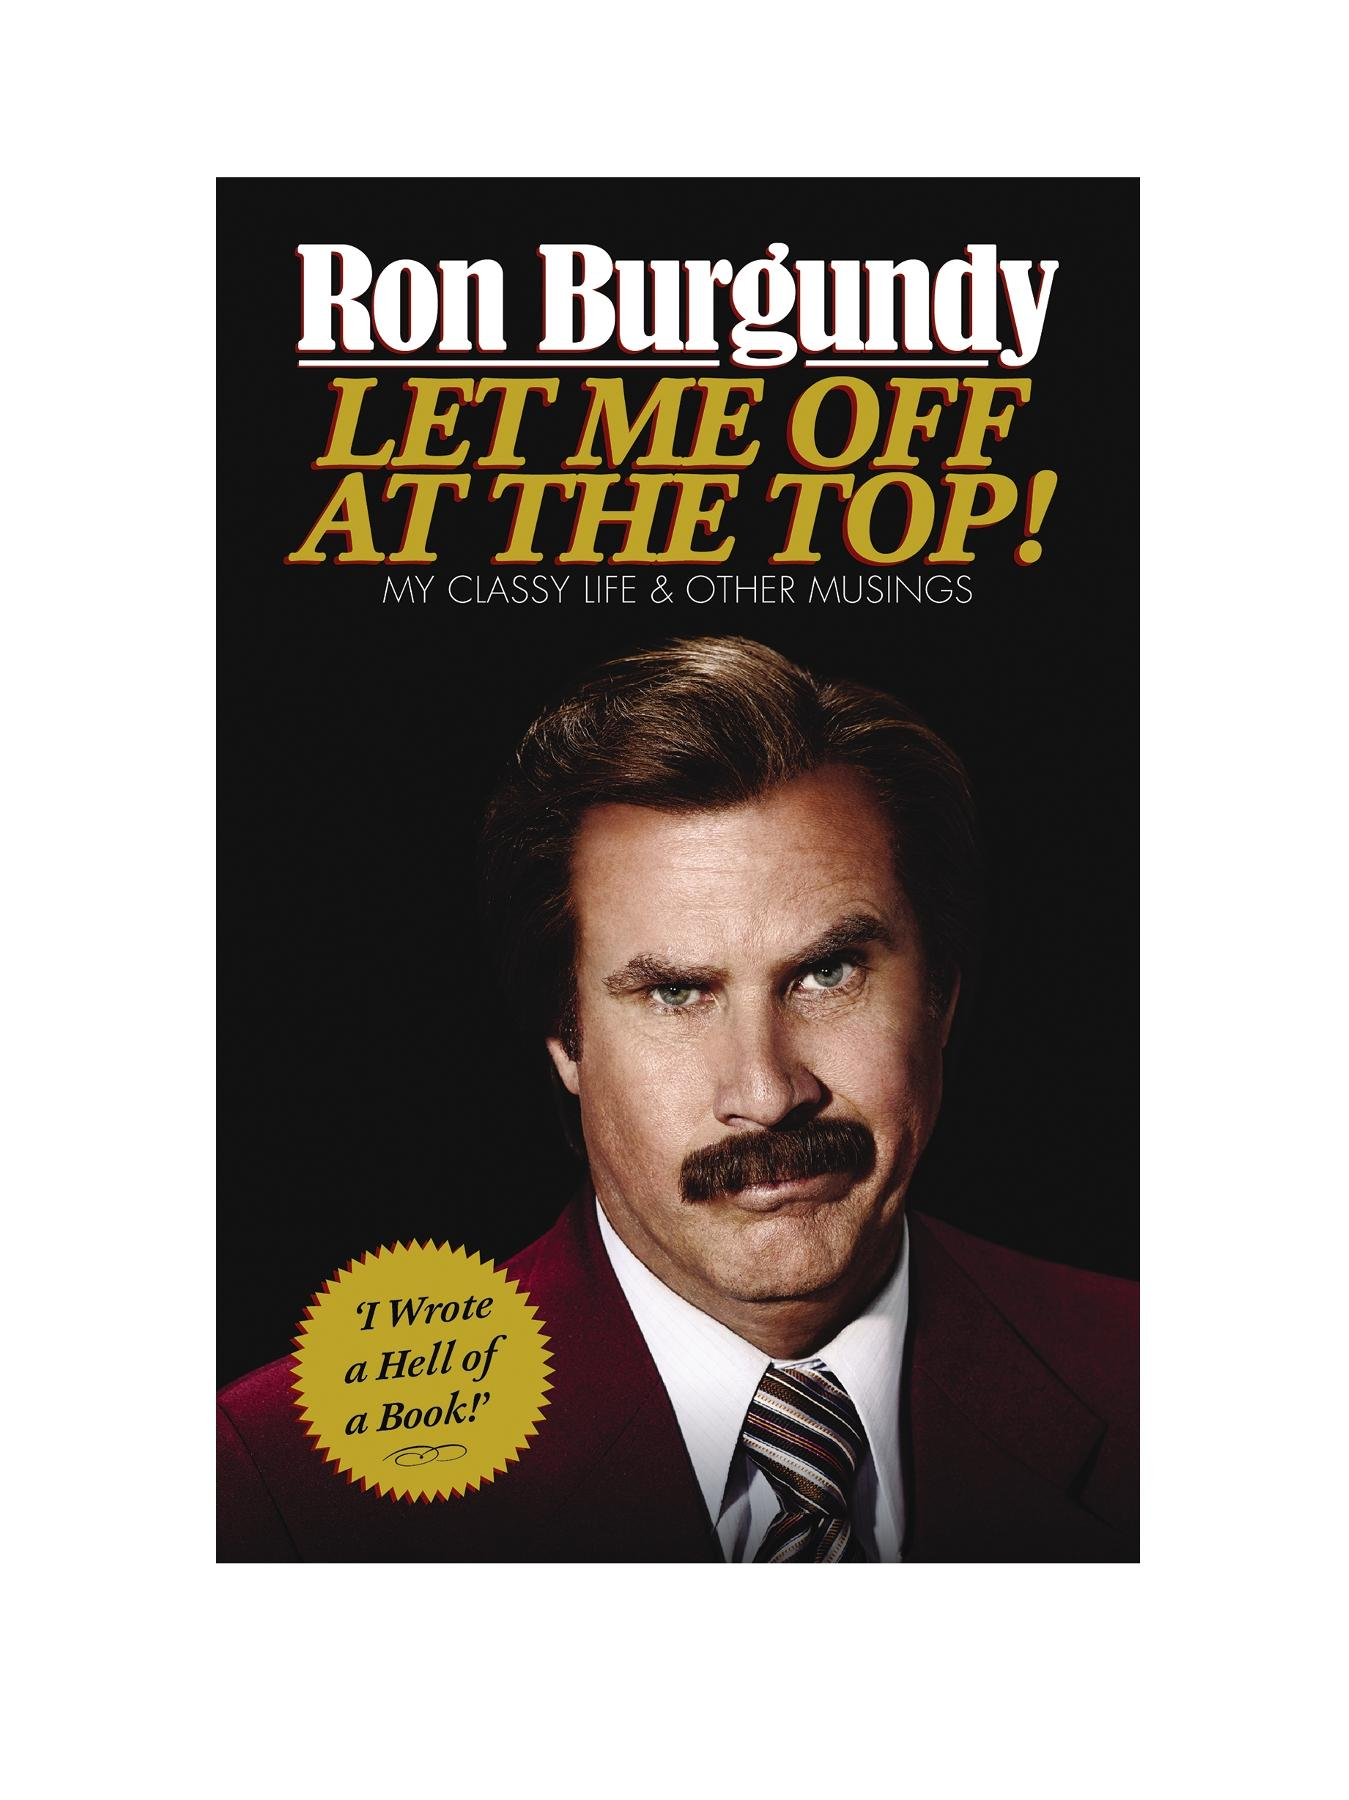 The Ron Burgundy Book by Ron Burgundy (Hardback)